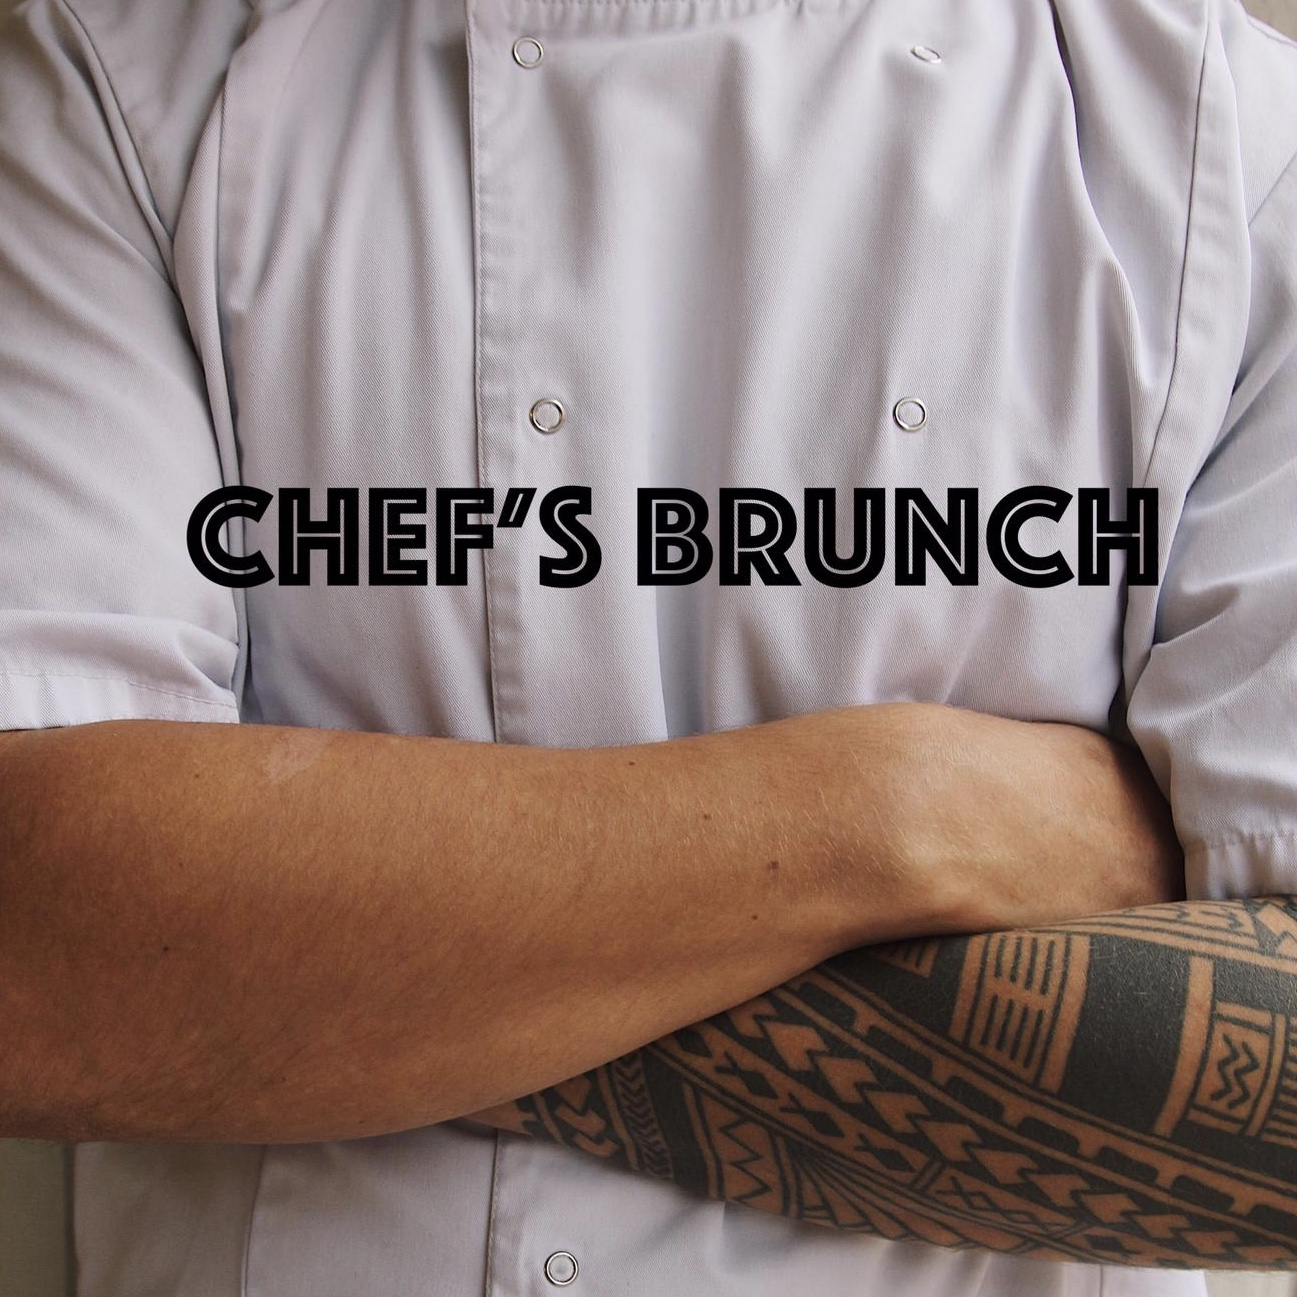 Chef's Brunch 10.10.20